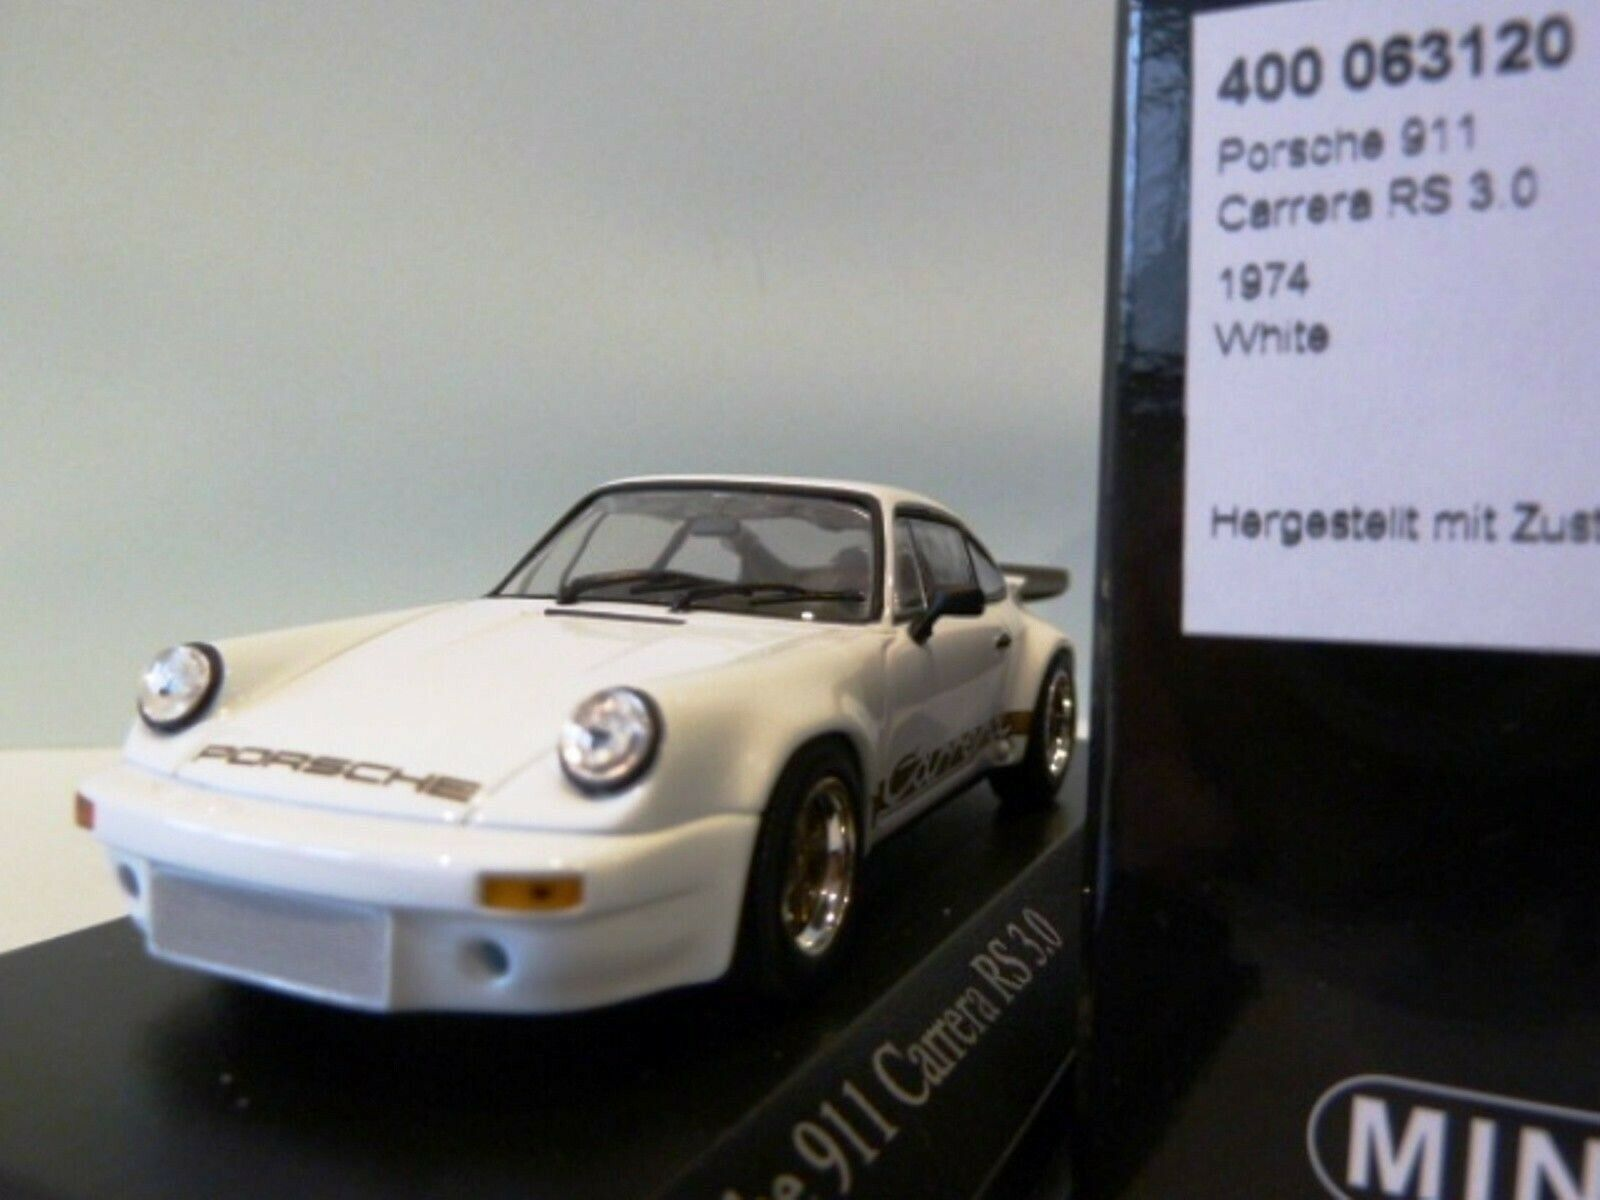 WOW EXTREMELY RARE Porsche 911 RSR 3.0 White gold 1974 1 43 Minichamps-GT2 R S T